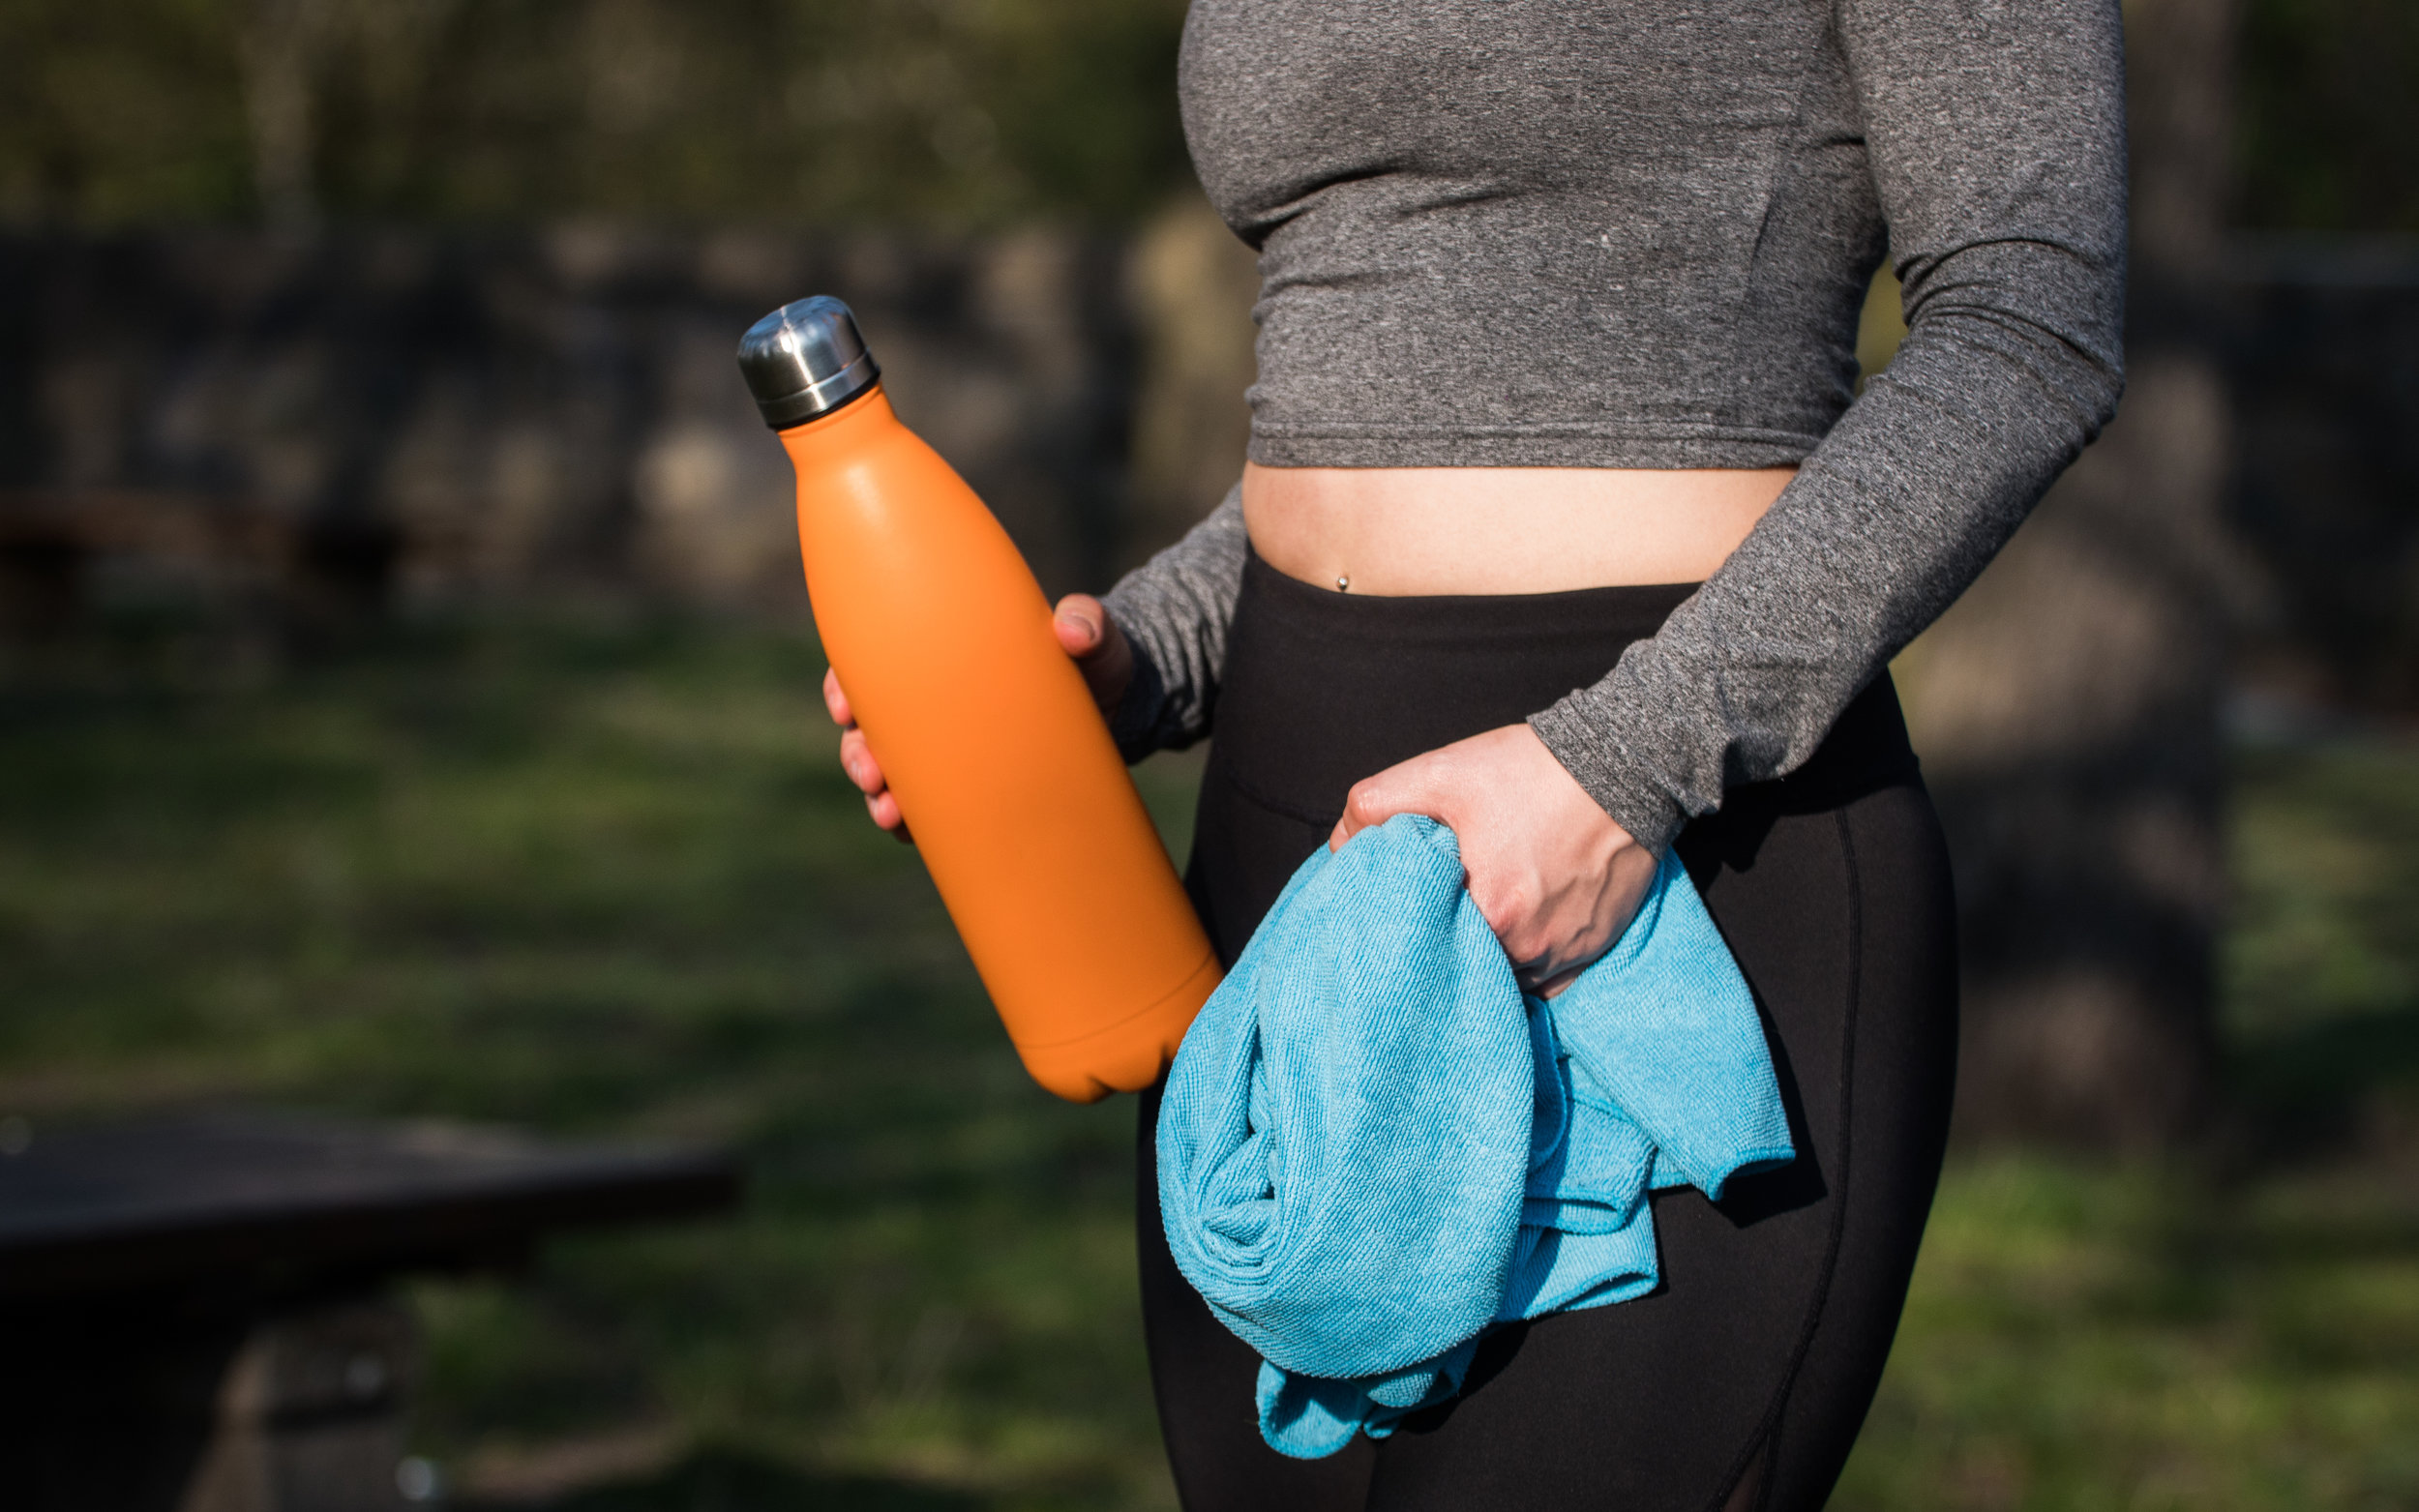 water when working out - Let's break this down a little for you, if your doing a heavy workout or working out in the heat then you should be aiming to drink 16-32 oz (almost 500ml -1 ltr) every hour during the workout. One thing I noticed when training for my sprint triathlons was then when we did pool work, many athletes forgot to drink water, however even though you are in the water you still need to hydrate on the inside too.